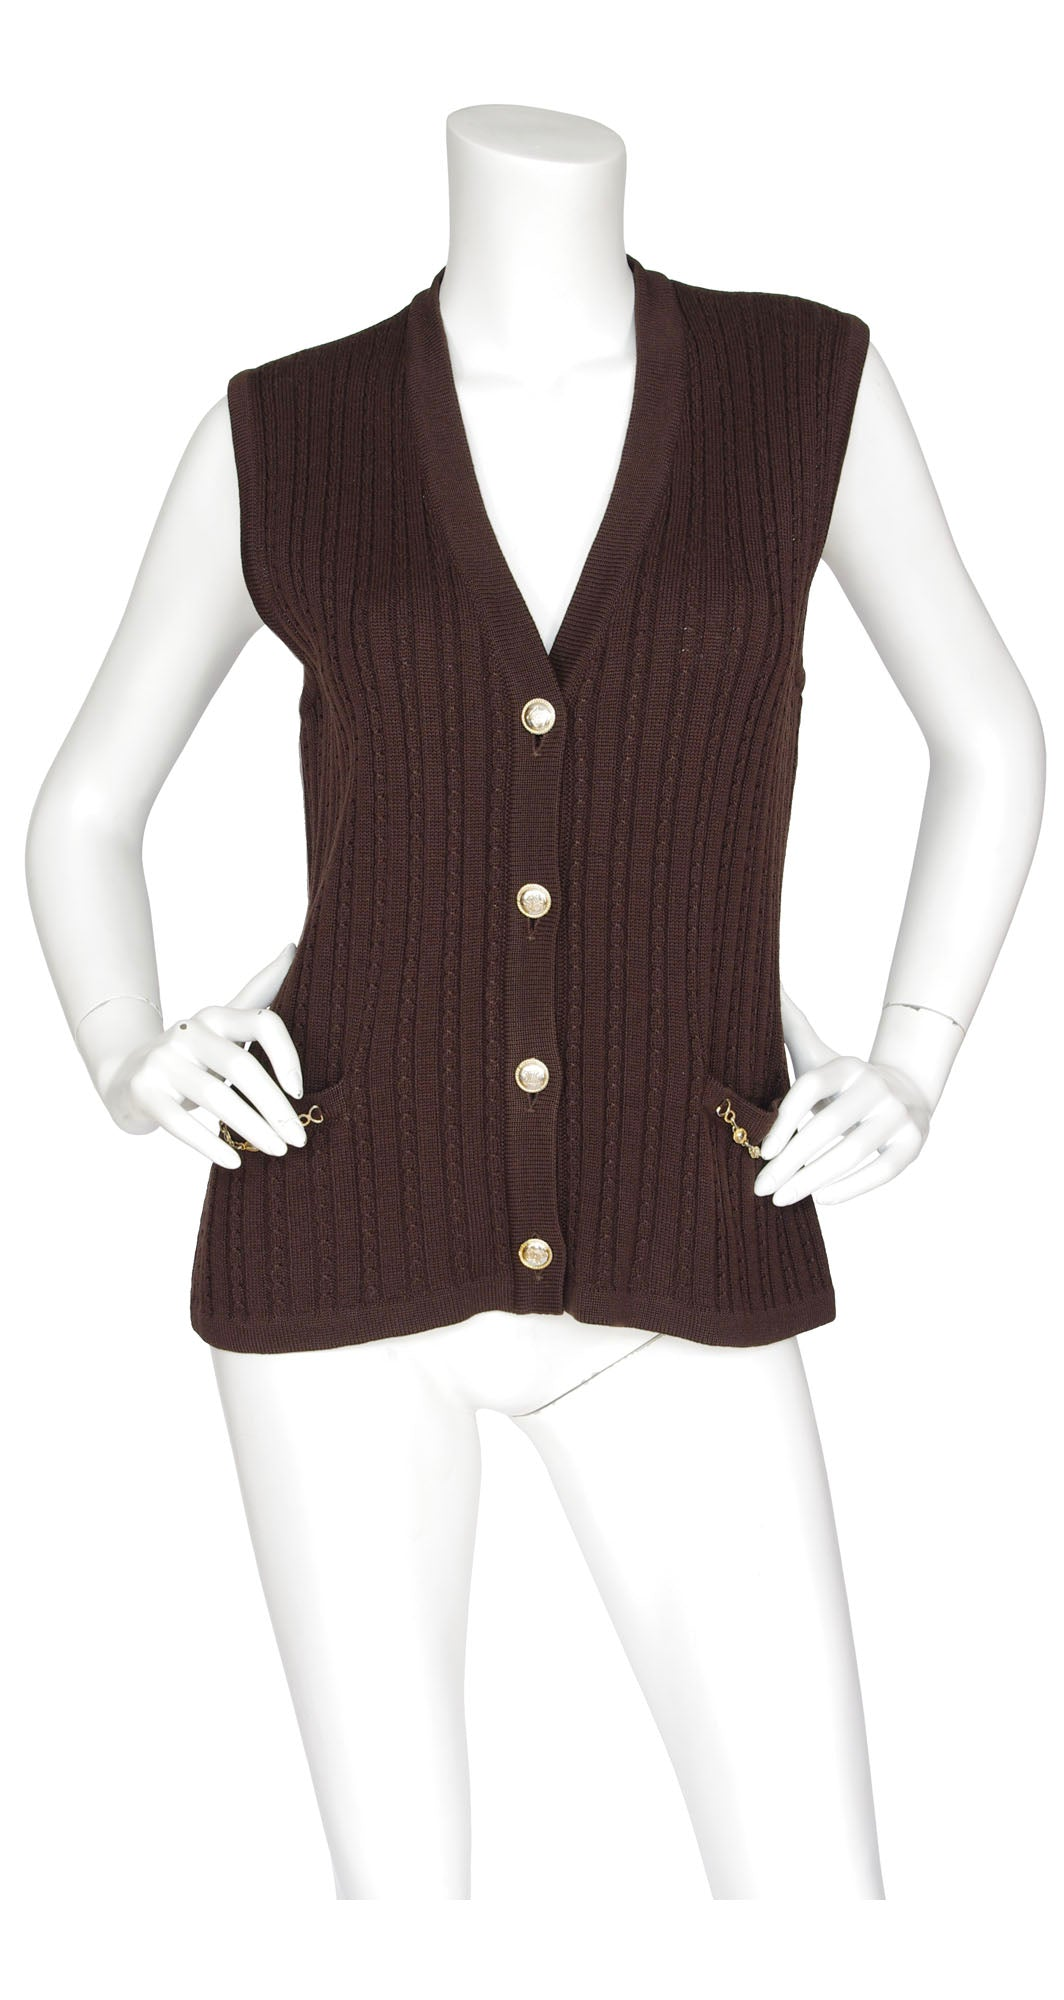 1970s Brown Wool Cable Knit Sweater Vest